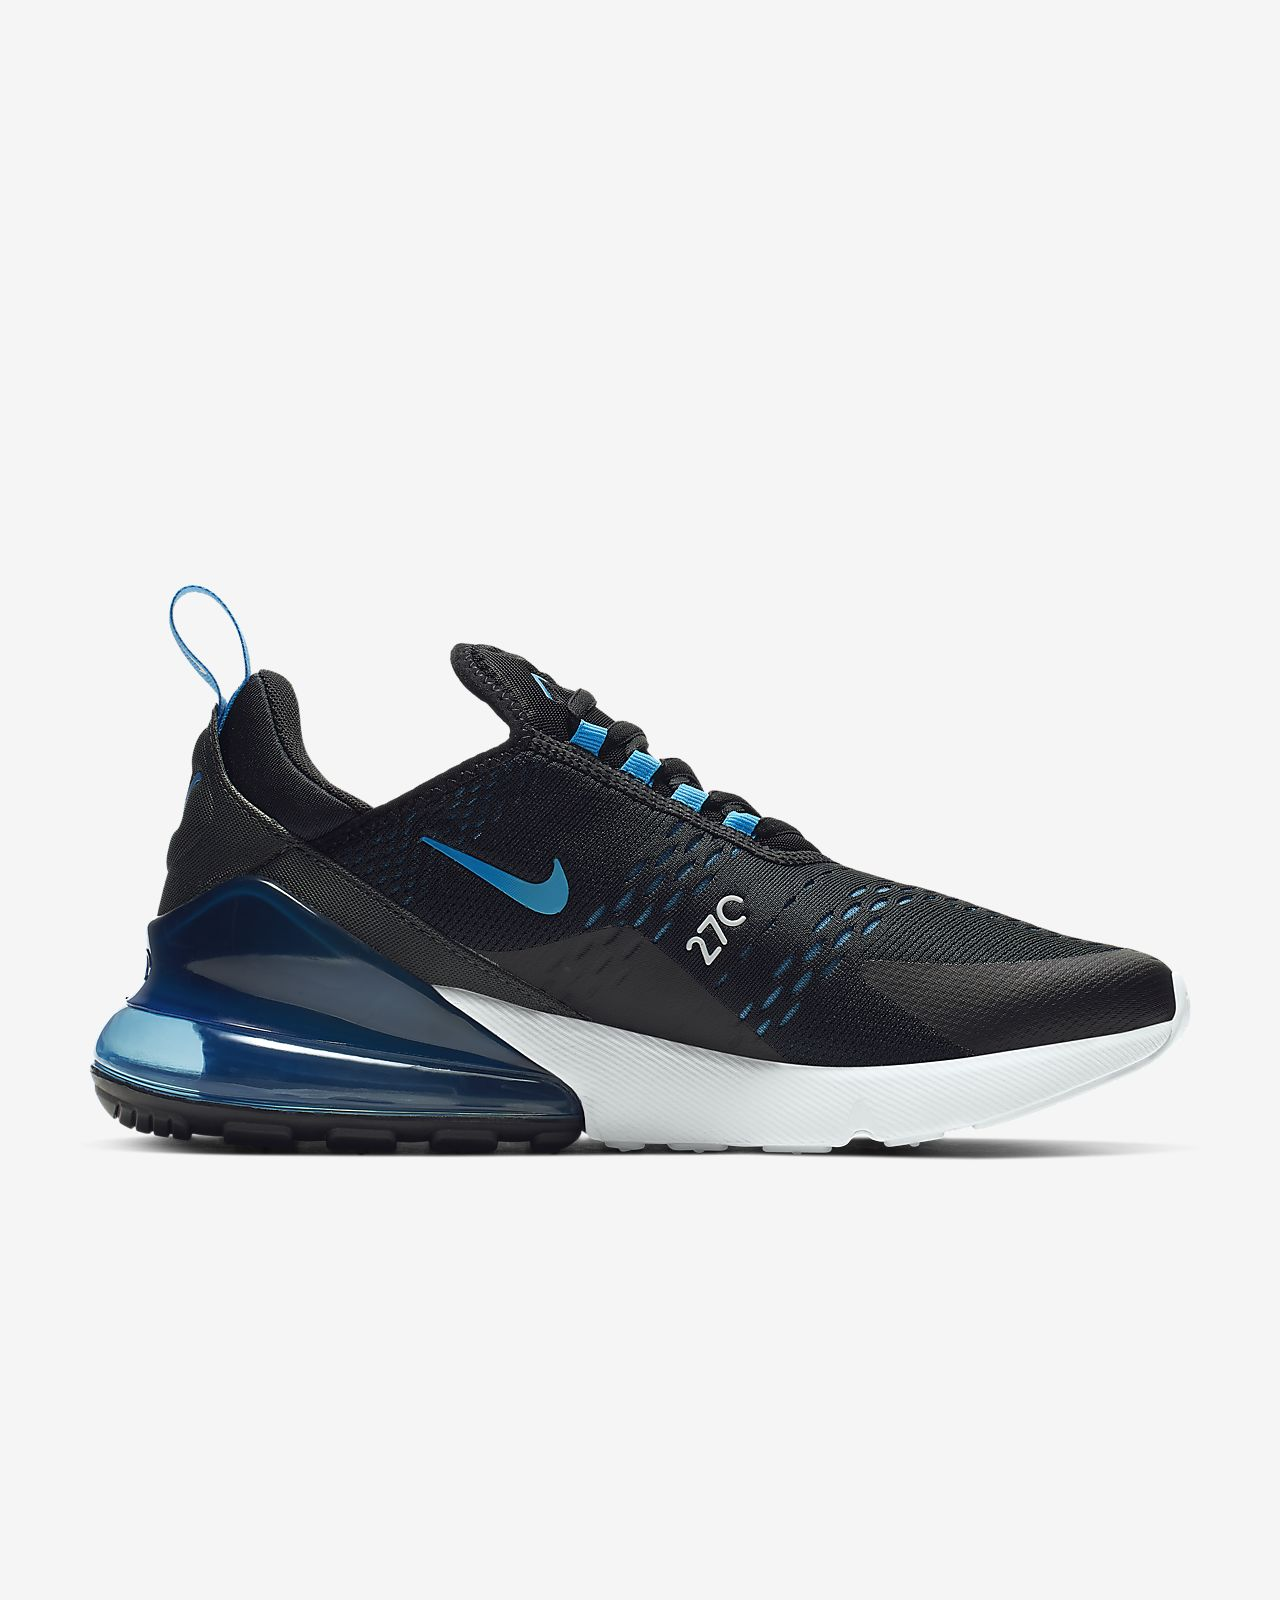 new concept 78dd0 f4578 ... Nike Air Max 270 Herrenschuh